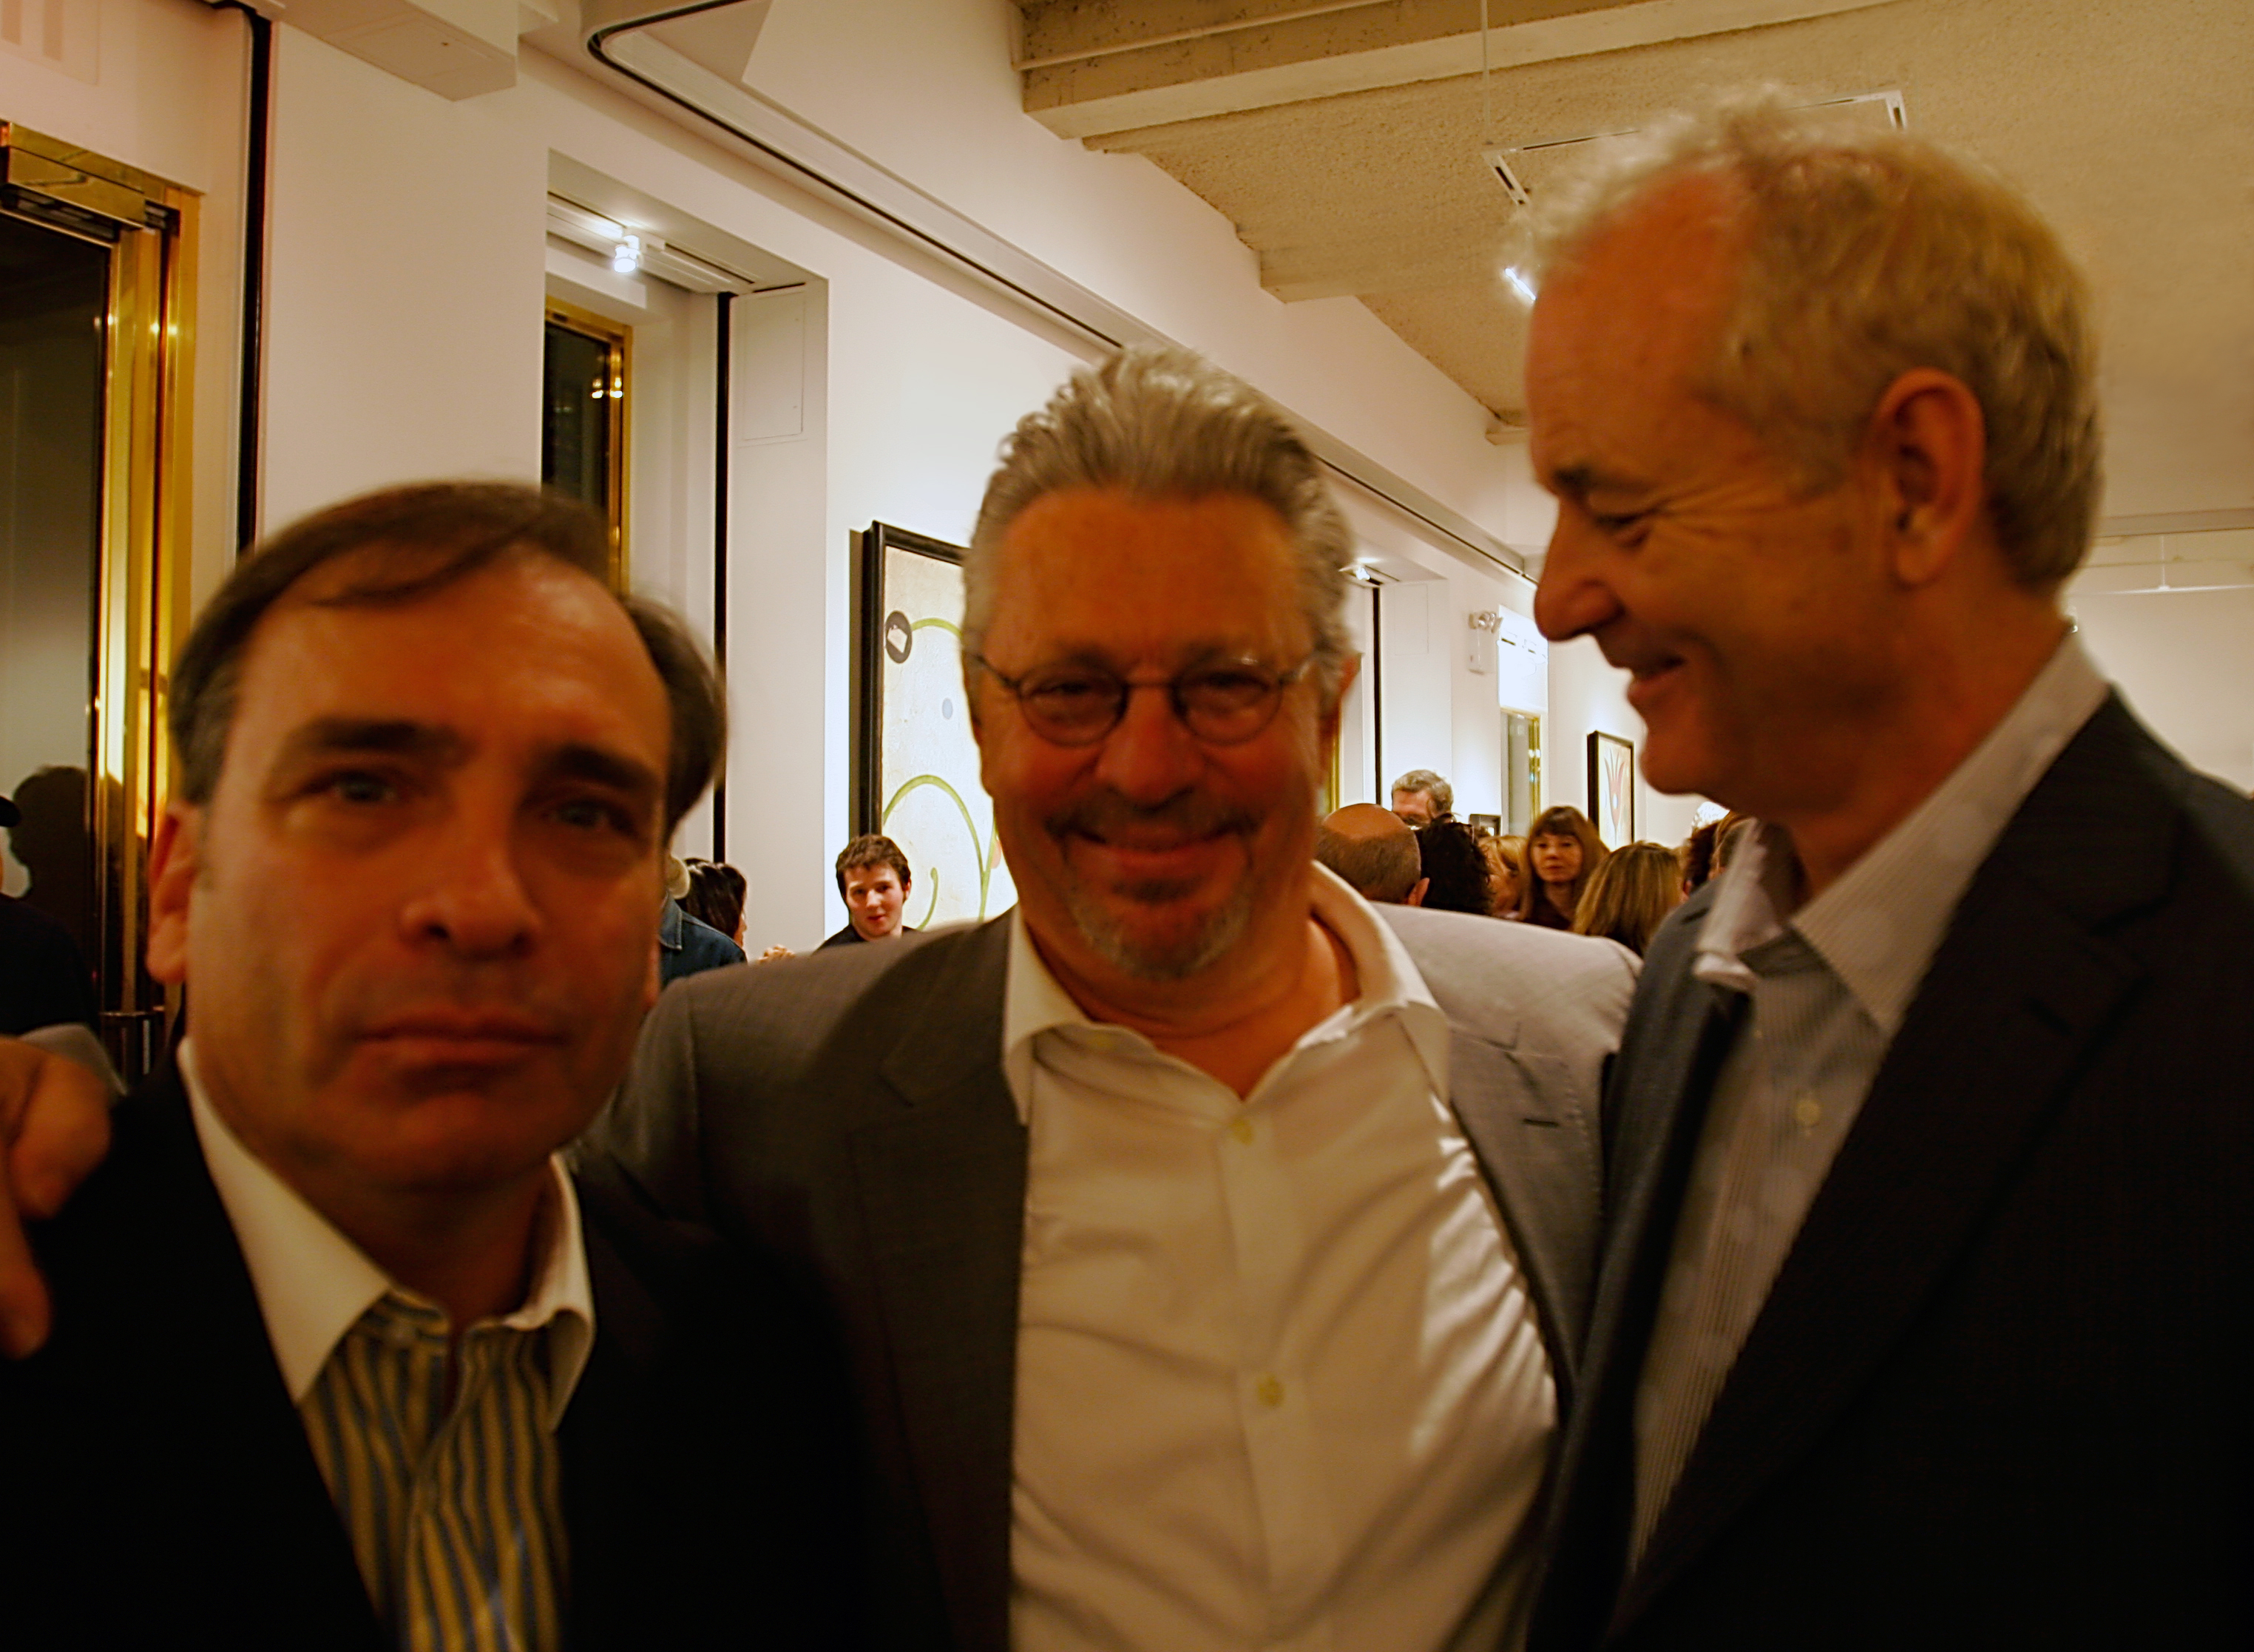 Artist Dan Rizzie in center with actor Bill Murray on right